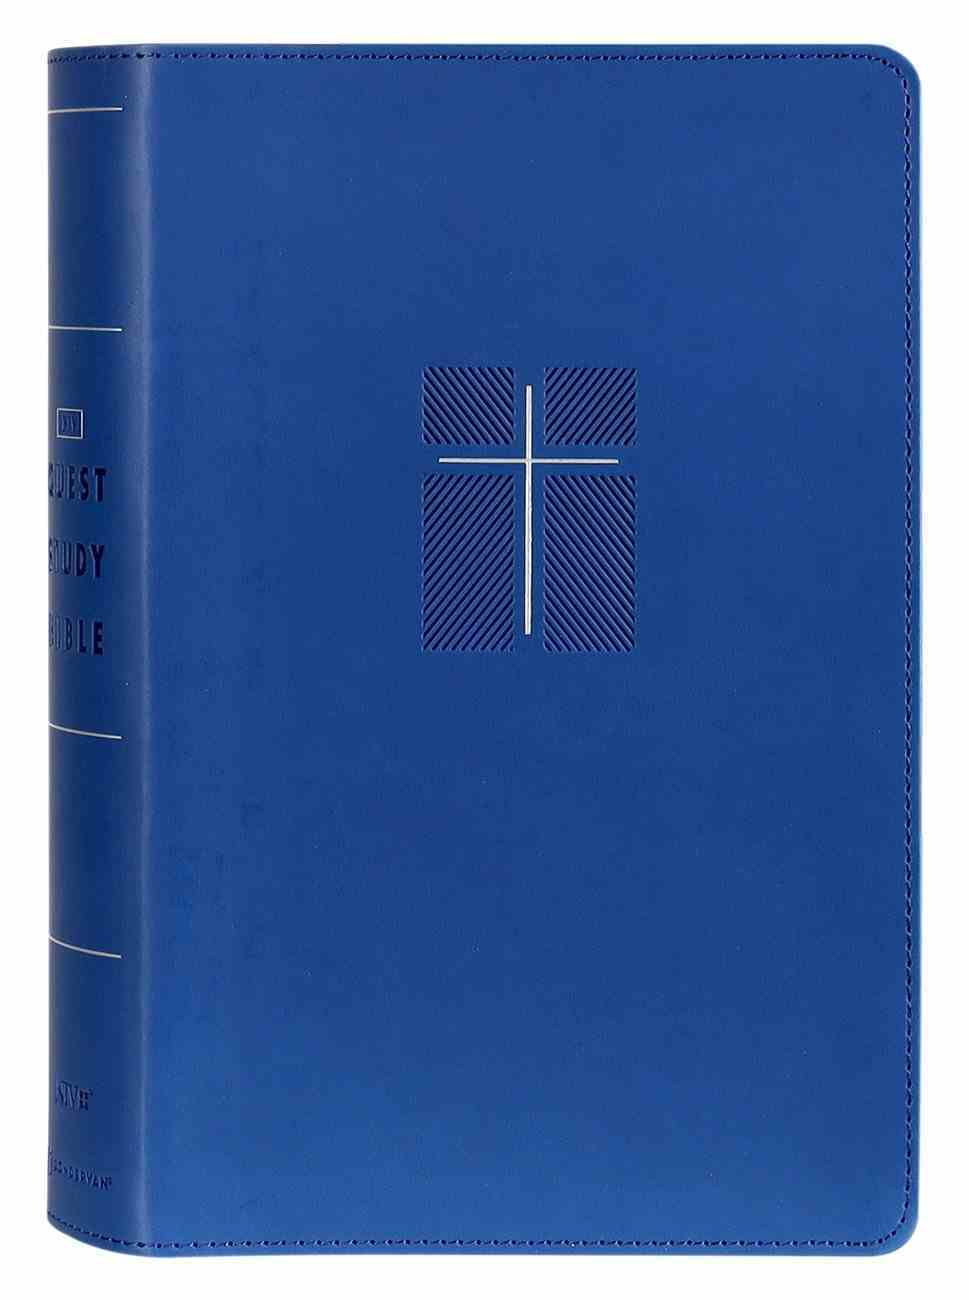 NIV Quest Study Bible Personal Size Blue Thumb Indexed Premium Imitation Leather